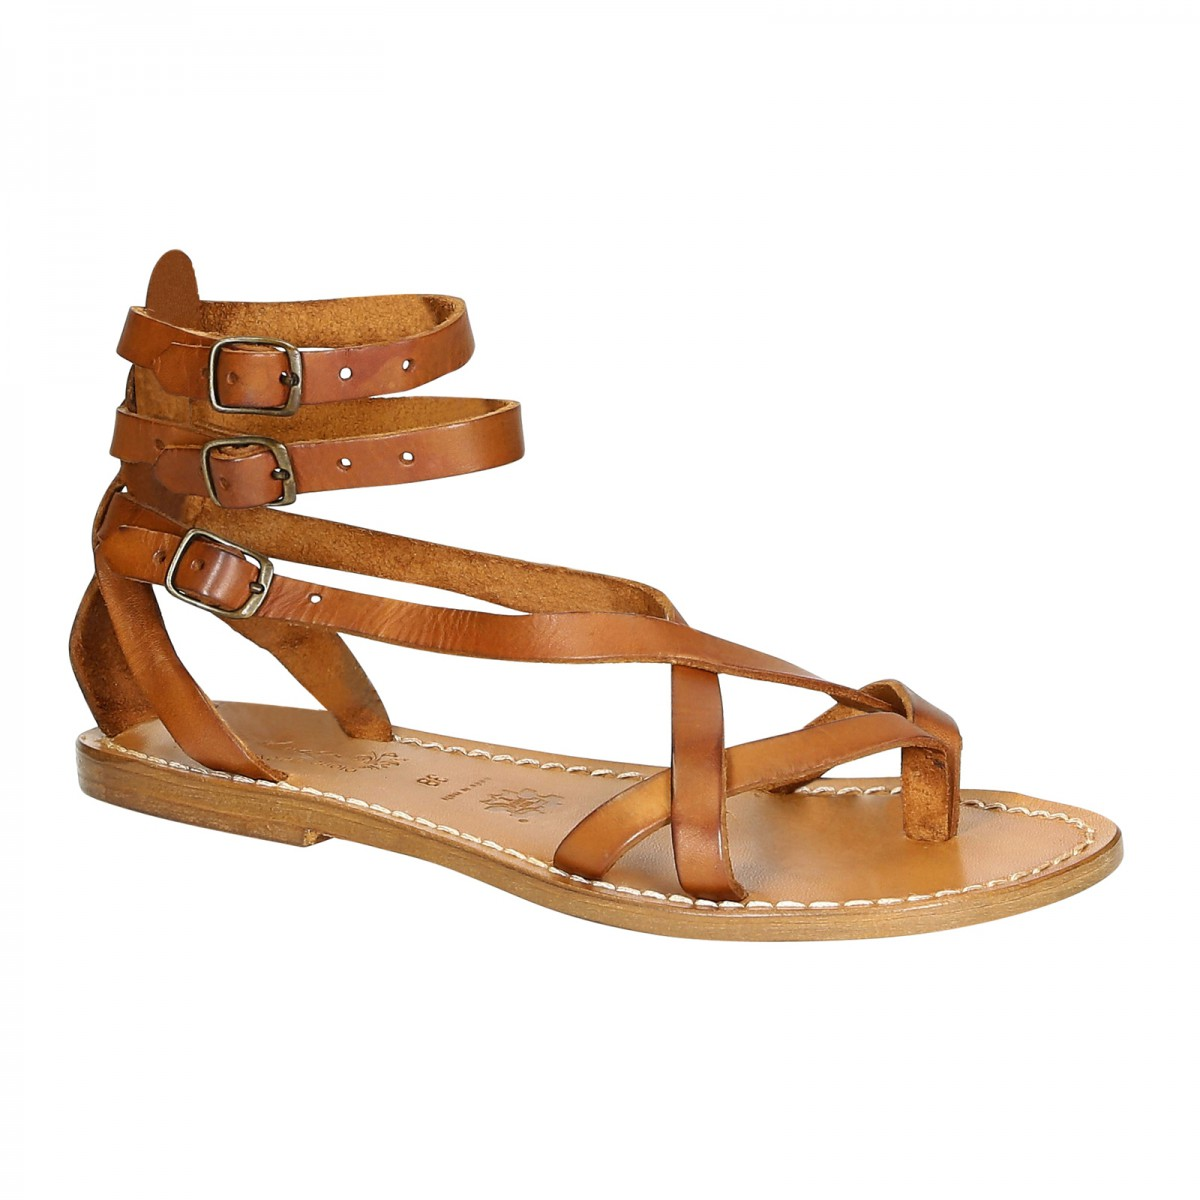 016b38dc2d03 Women s Strappy leather sandals Handmade in Italy in vintage cuir. Loading  zoom